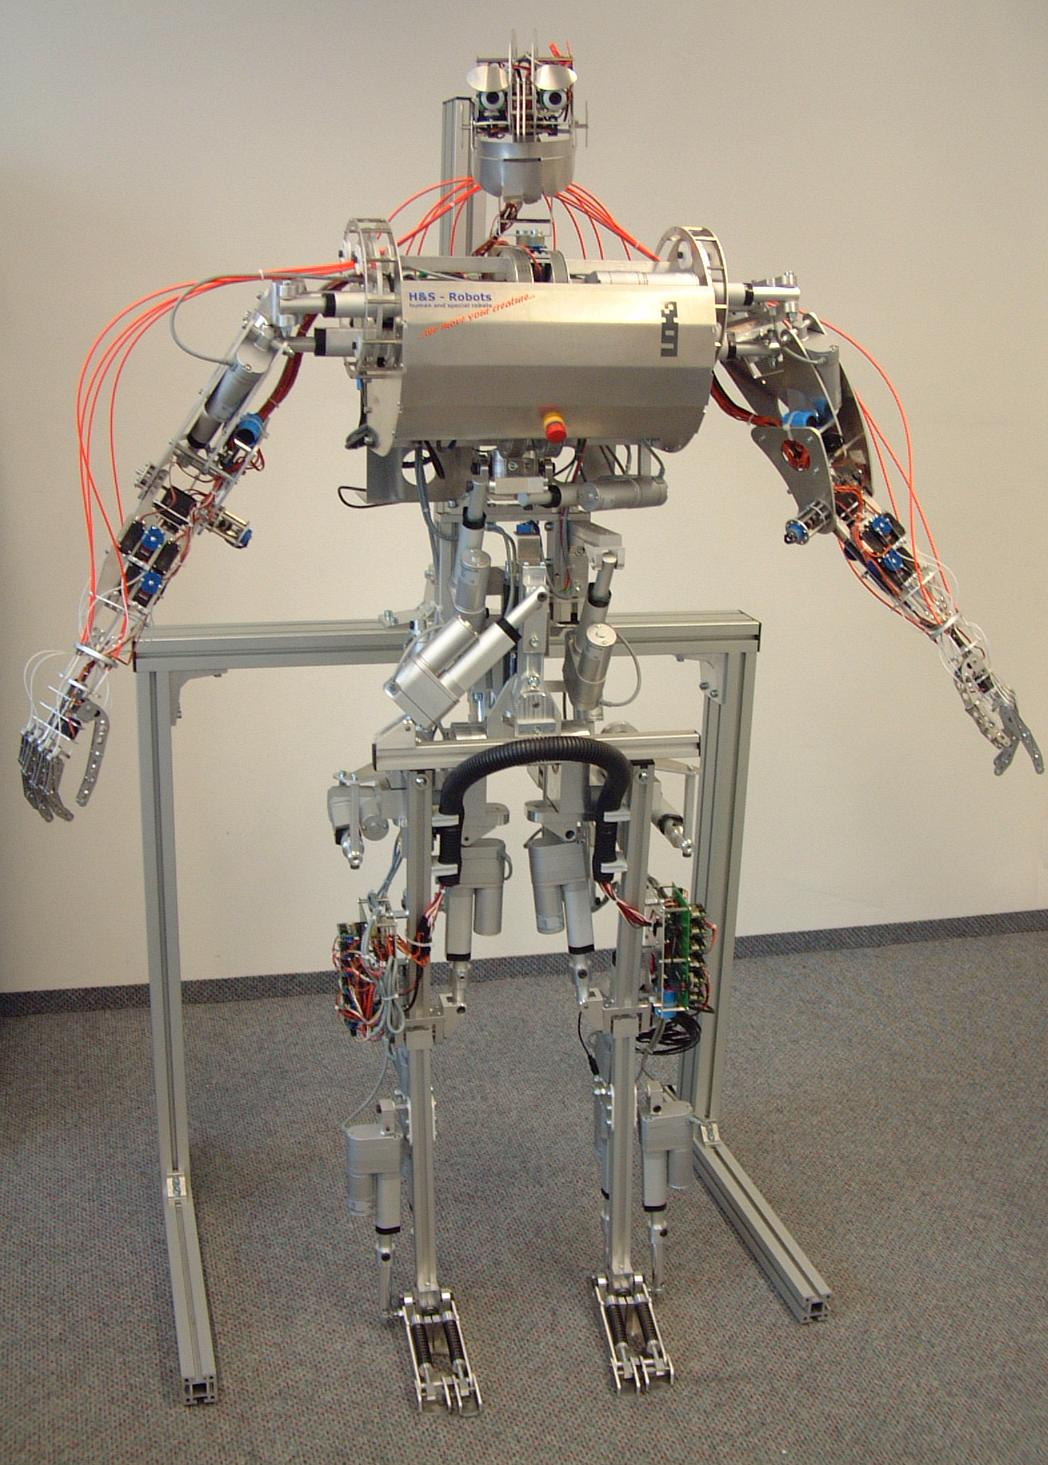 Rhoni - Picture: /uploads/images/robots/robotpictures-all/rhoni-001.JPG